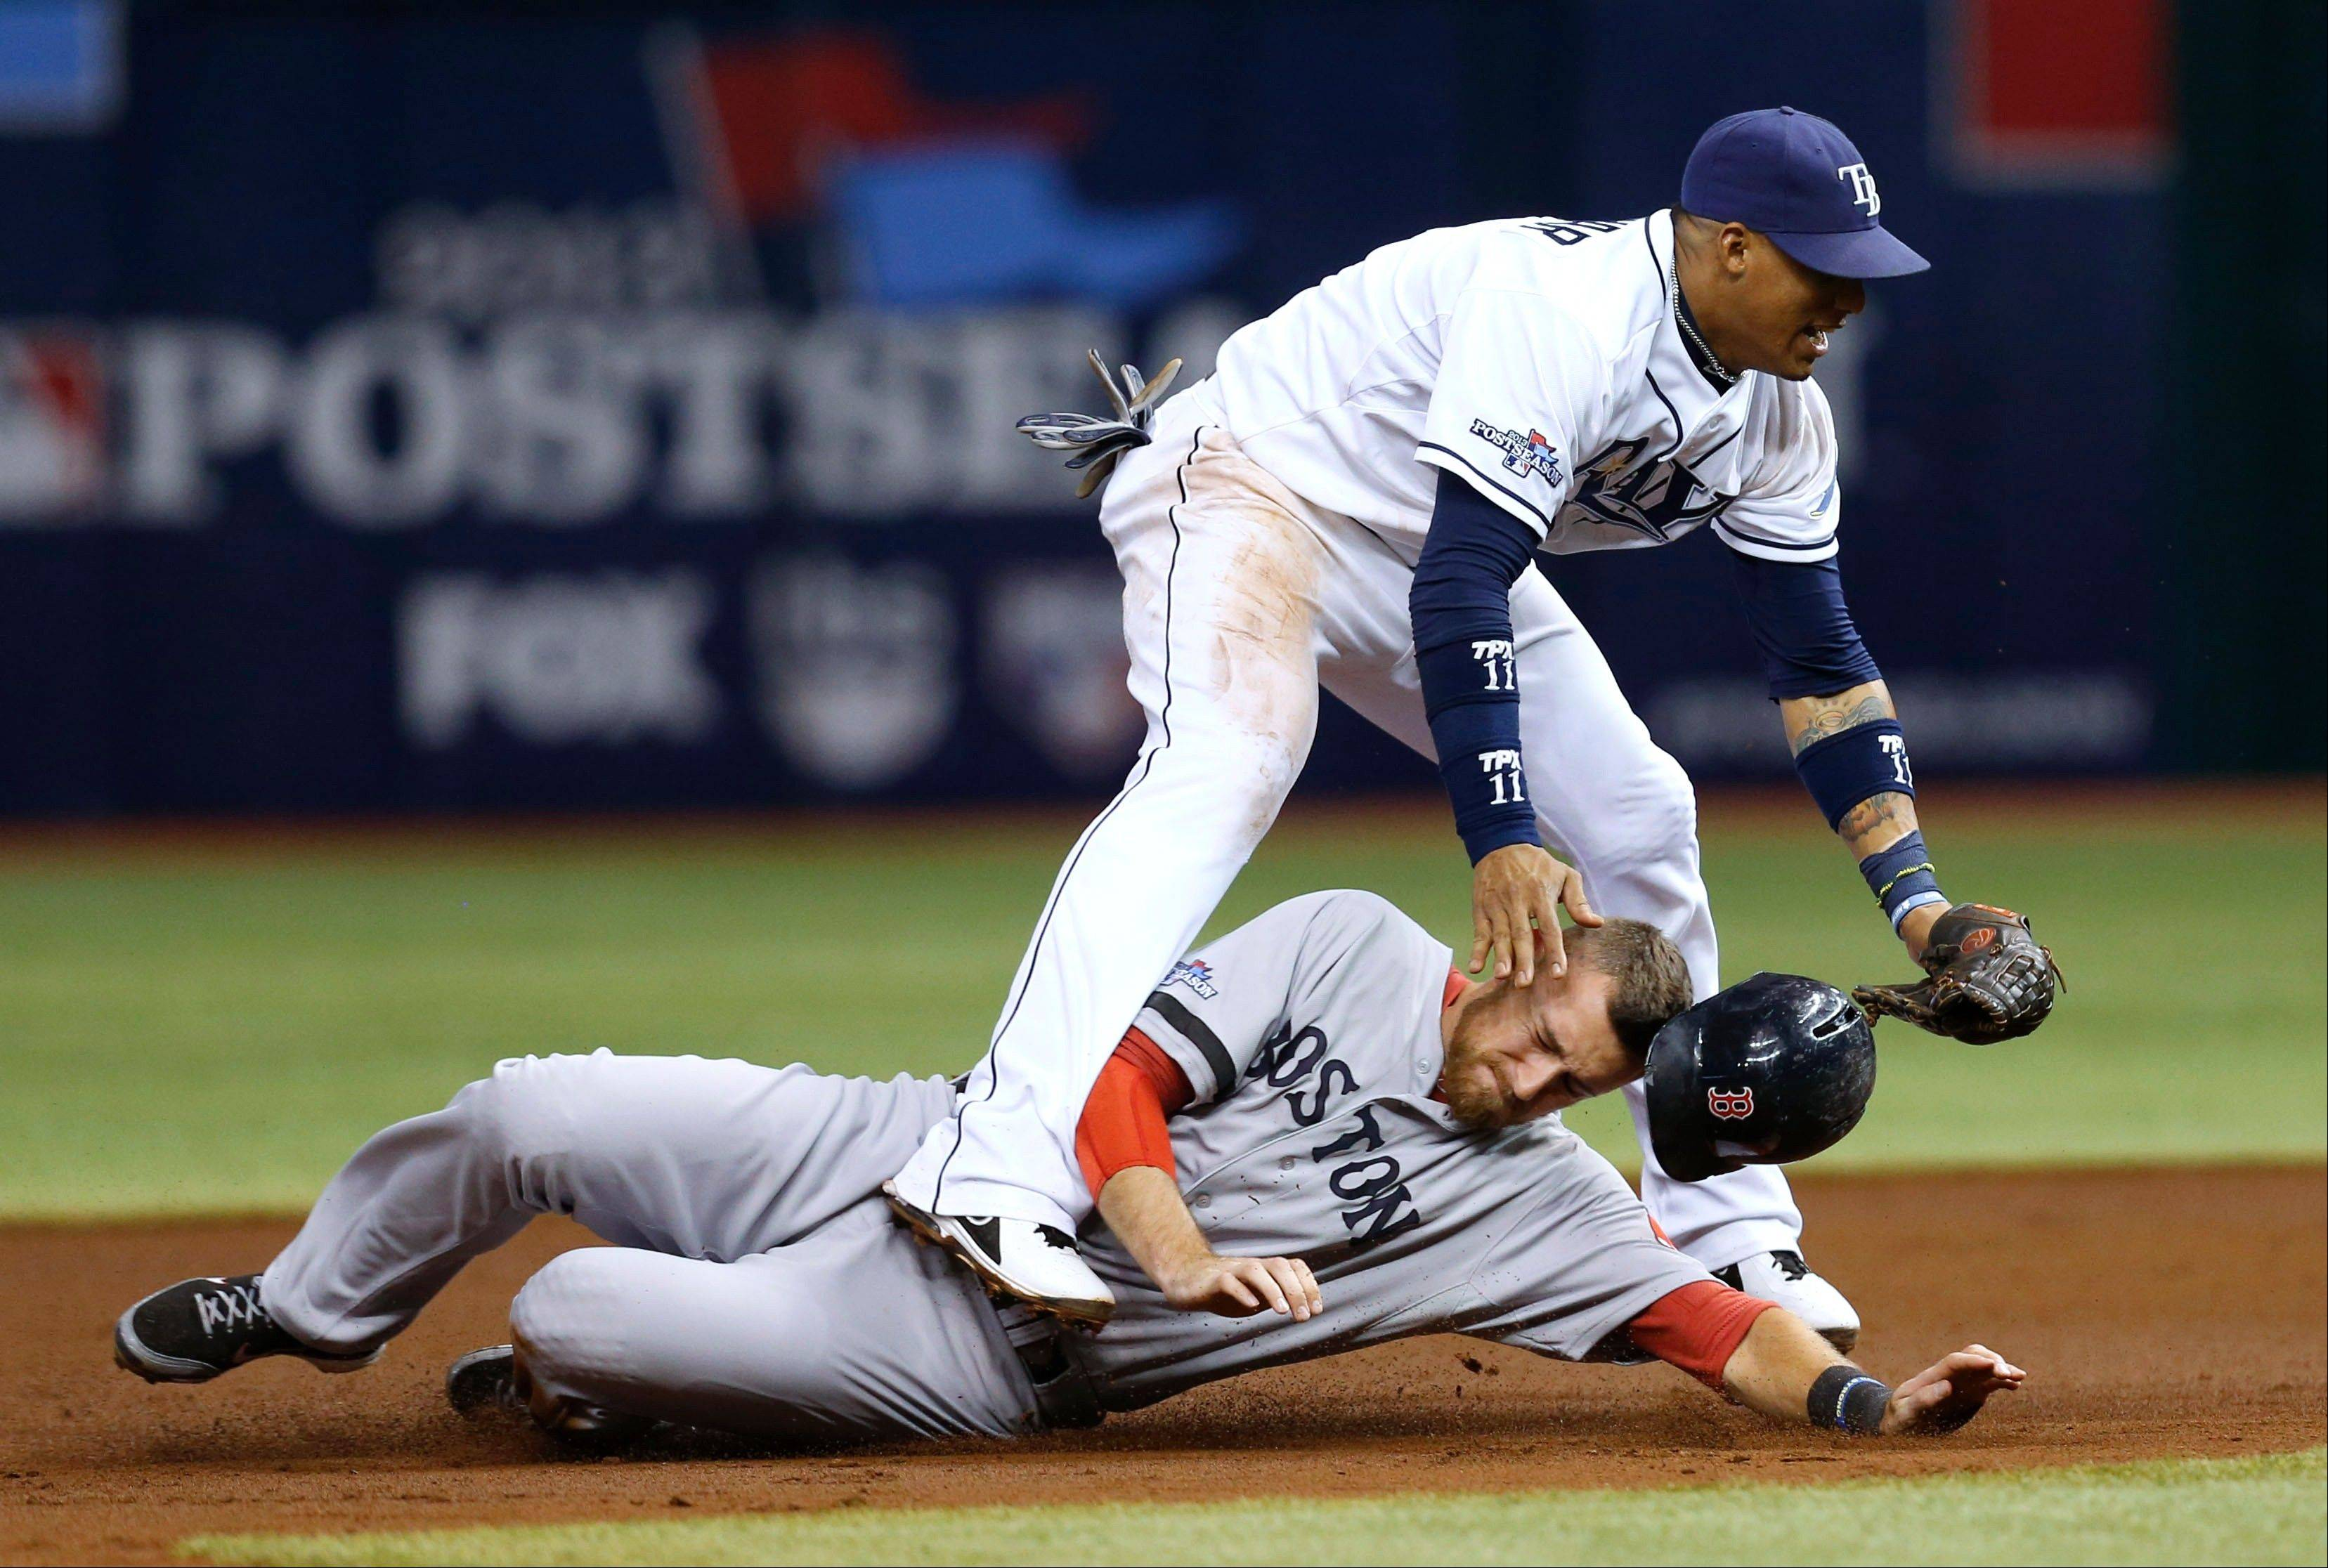 Boston's Will Middlebrooks slides under Tampa Bay Rays shortstop Yunel Escobar after he was tagged out on a double play in the third inning Tuesday in Game 4.